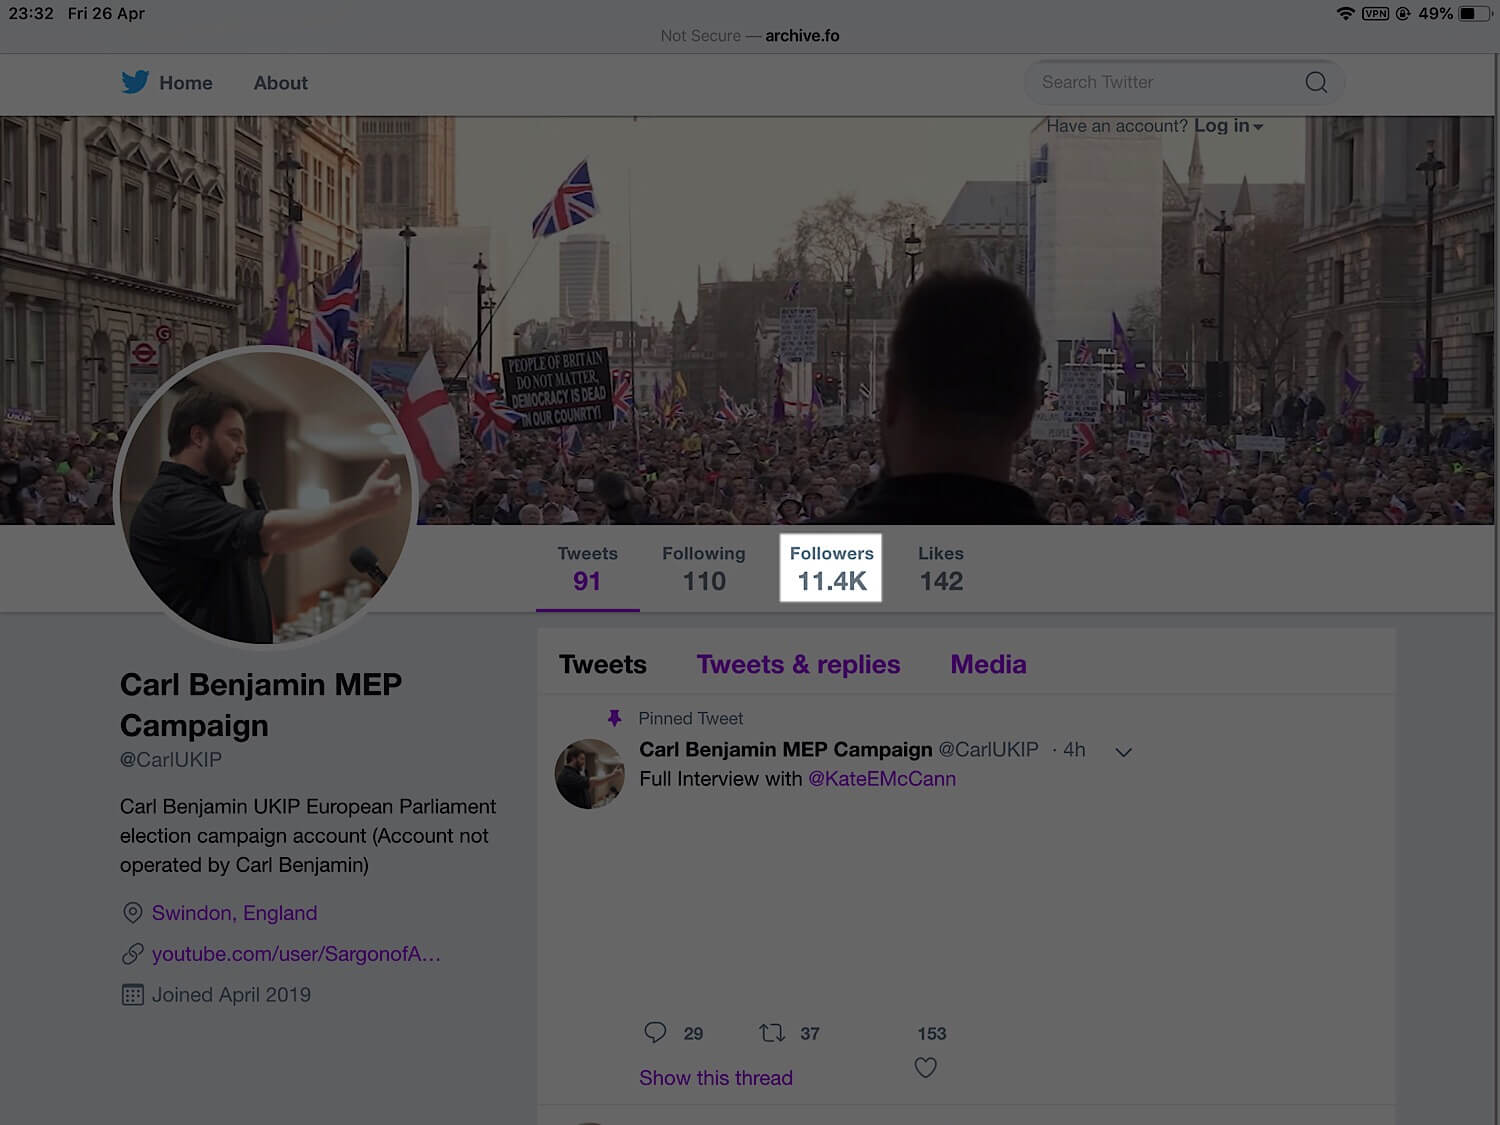 The archived version of Carl Benjamin's MEP campaign Twitter account before it was suspended.